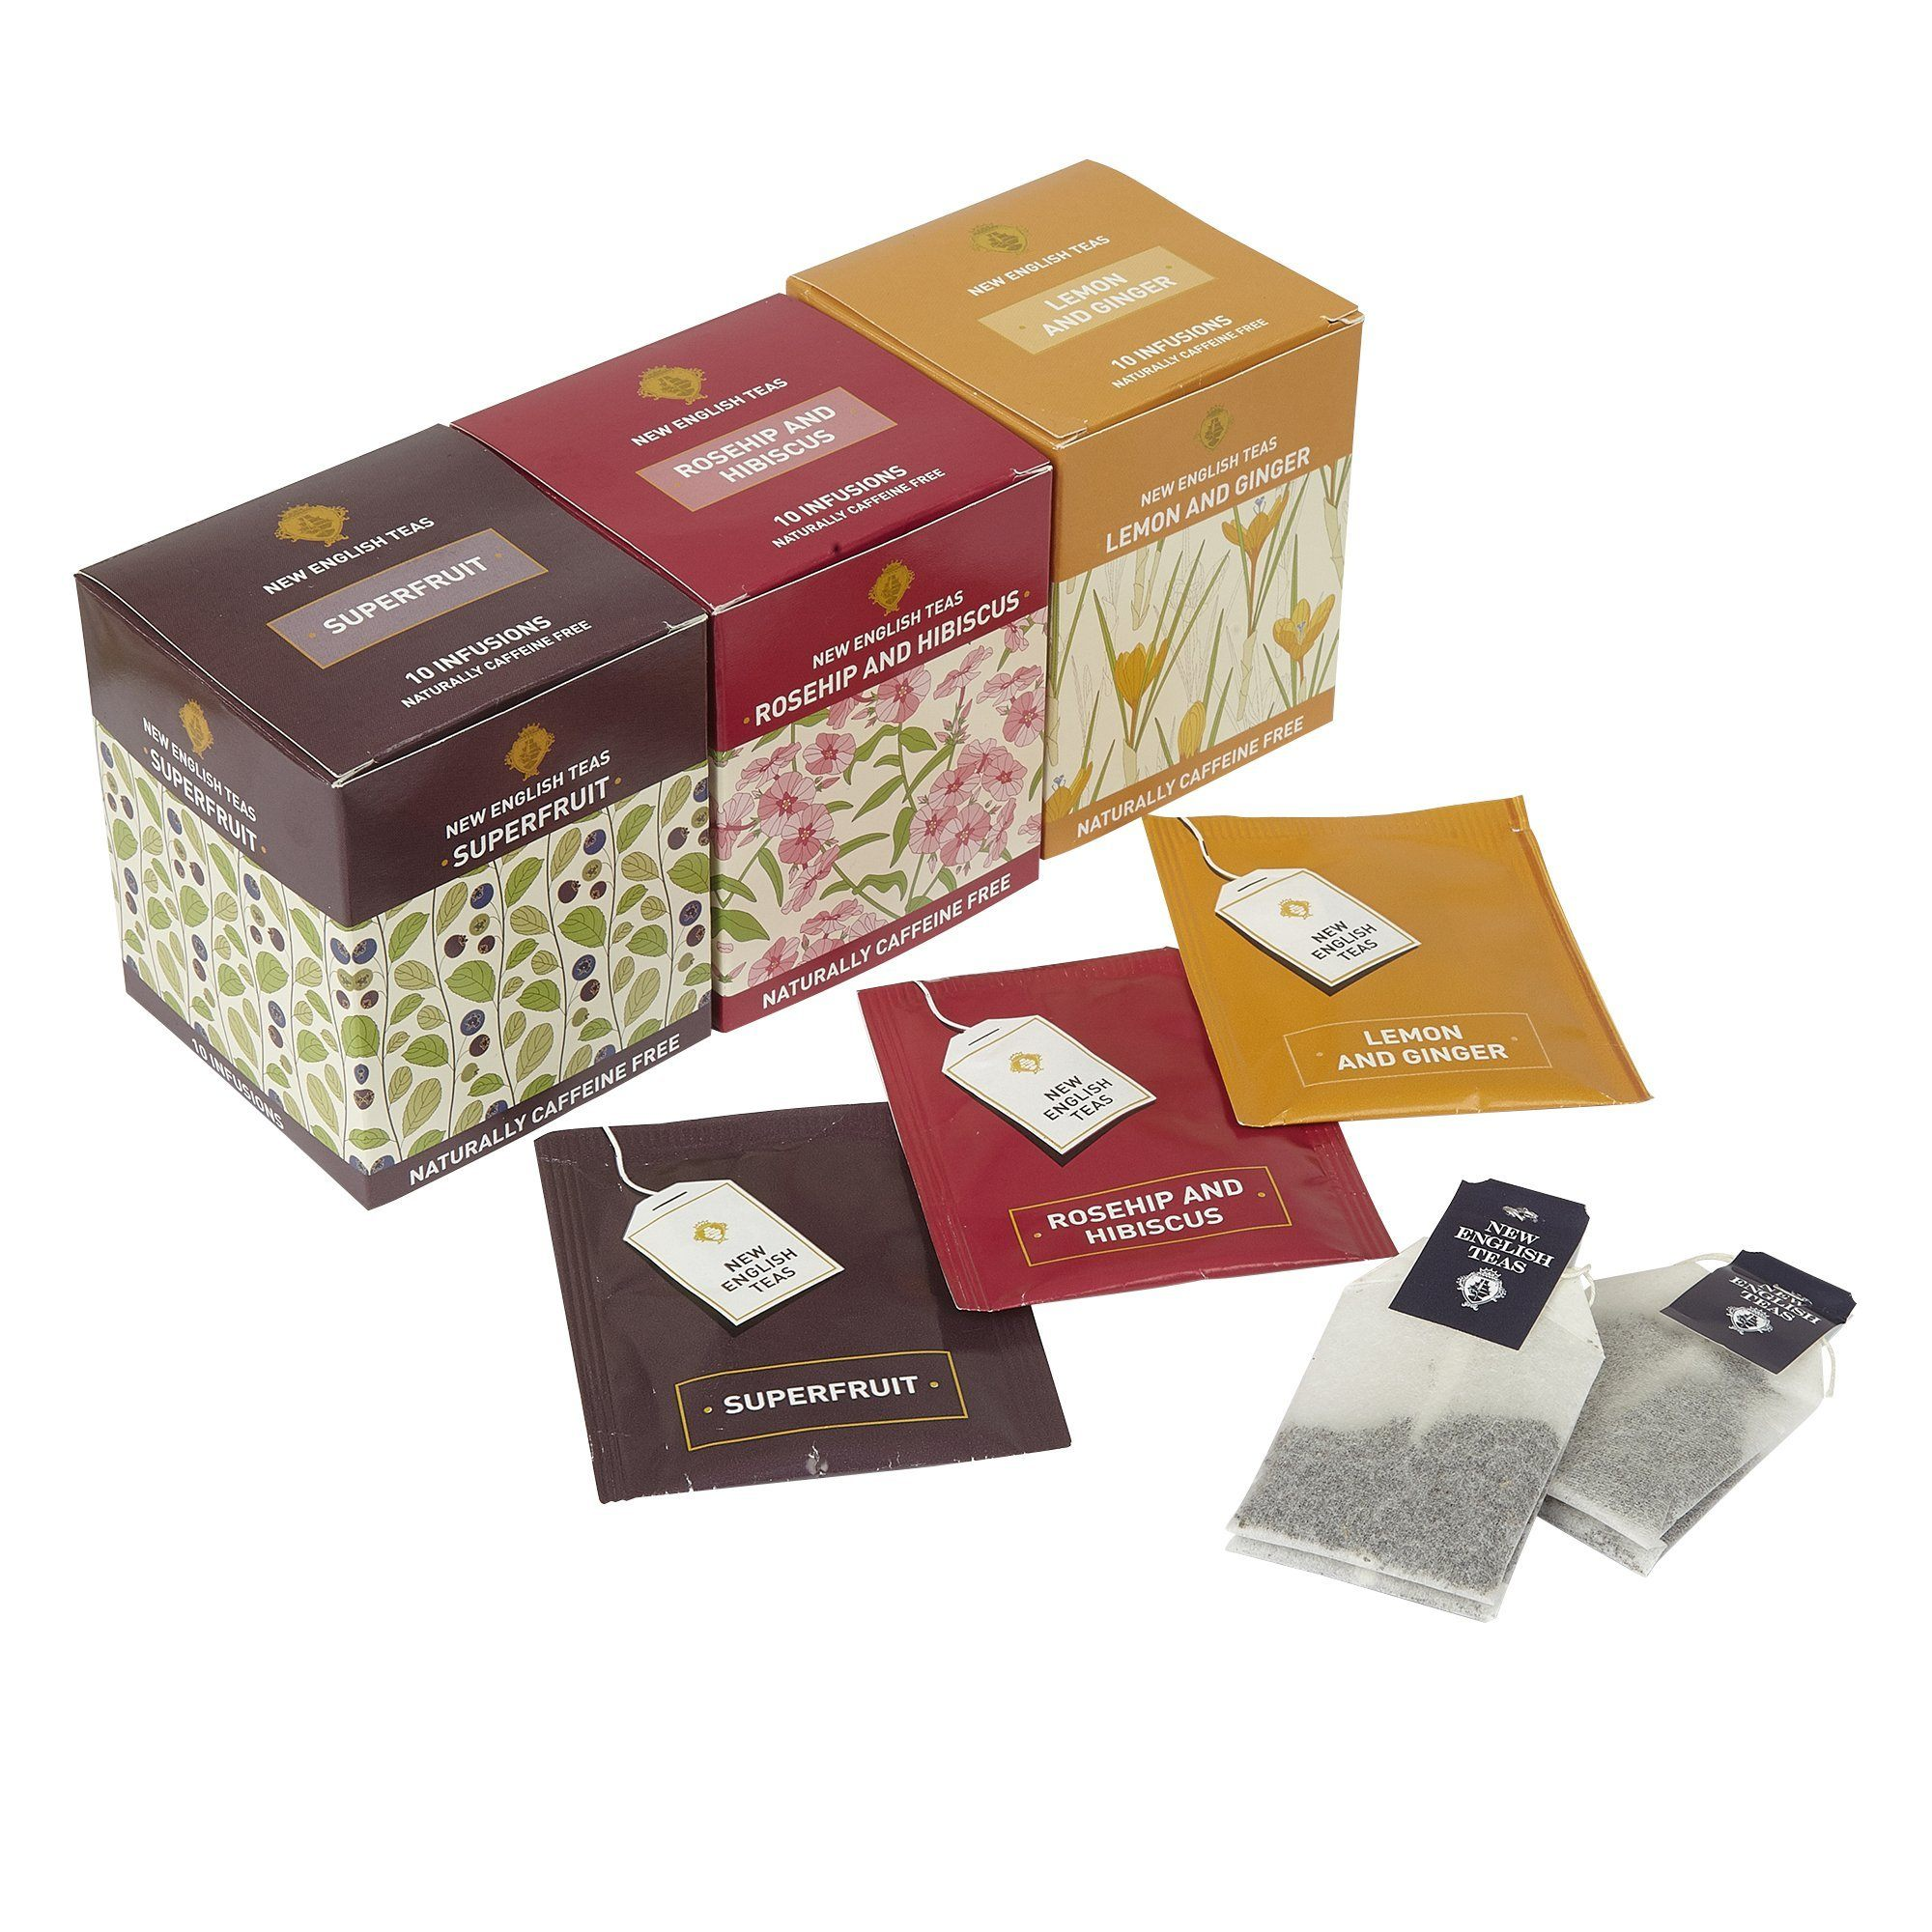 Fruit Tea Selection Fruit Bowl 30 Teabags Fruit Tea, Herbal Tea New English Teas